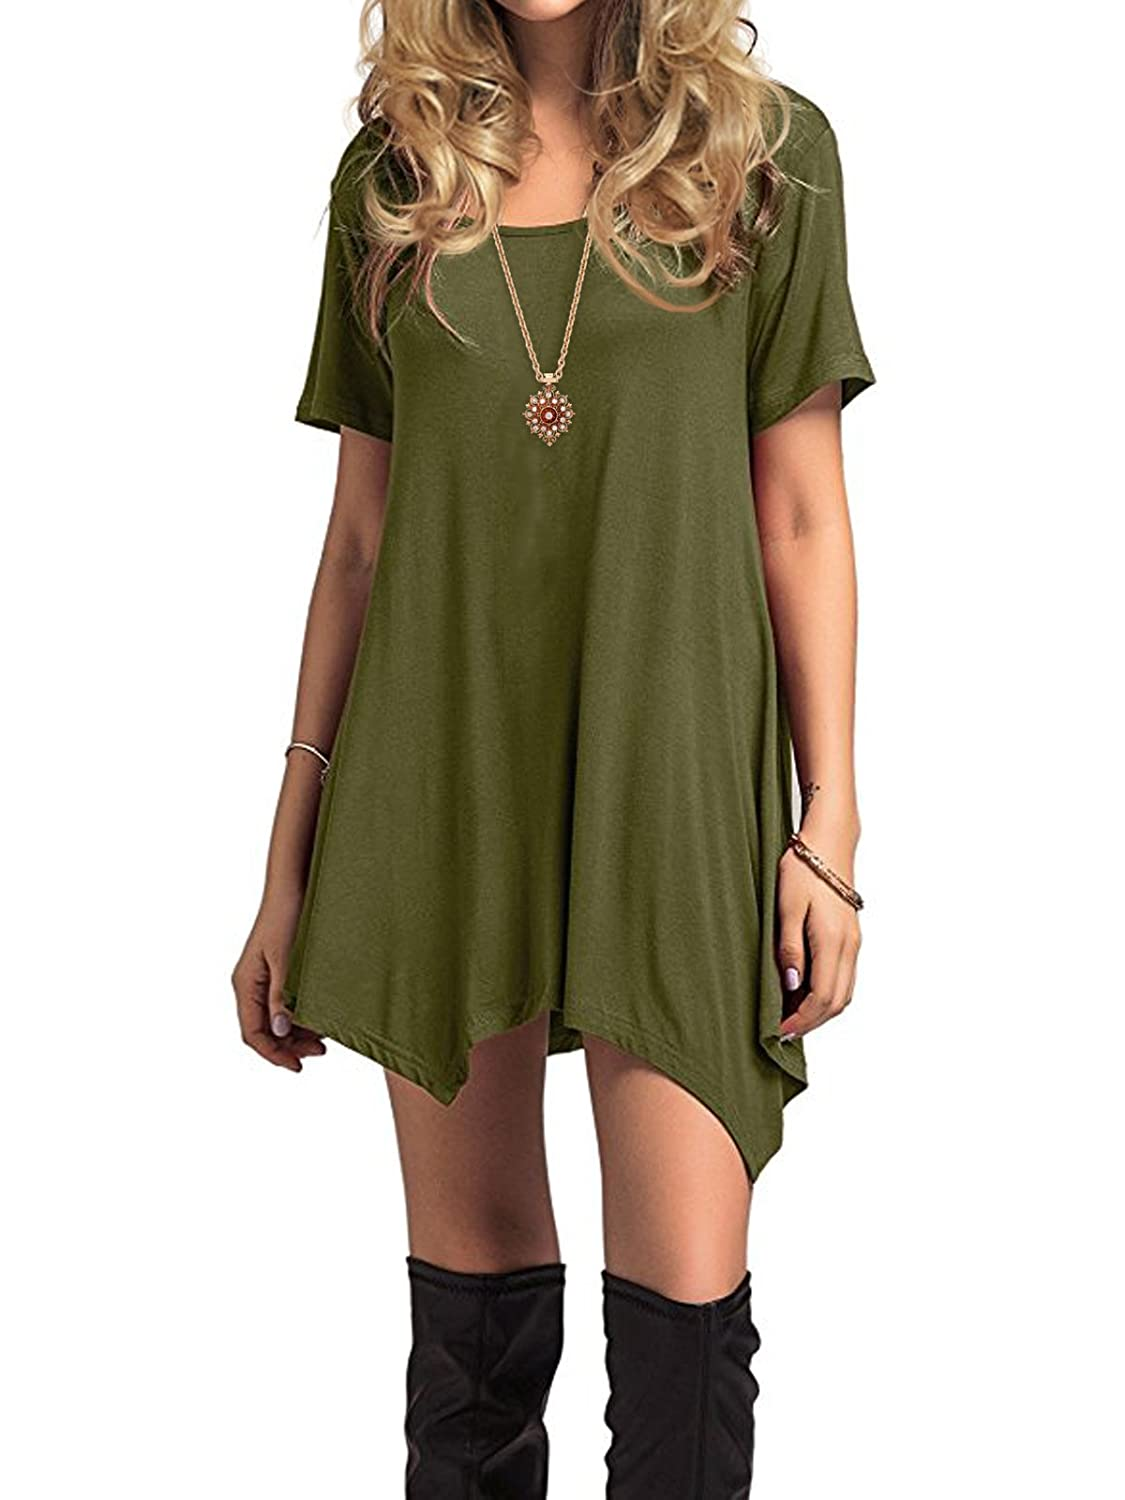 fe5d14b1 Century Star Women's Sexy Button Low Cut Down V Neck Short Sleeve Tunic  Bodycon T-Shirt Summer at Amazon Women's Clothing store: